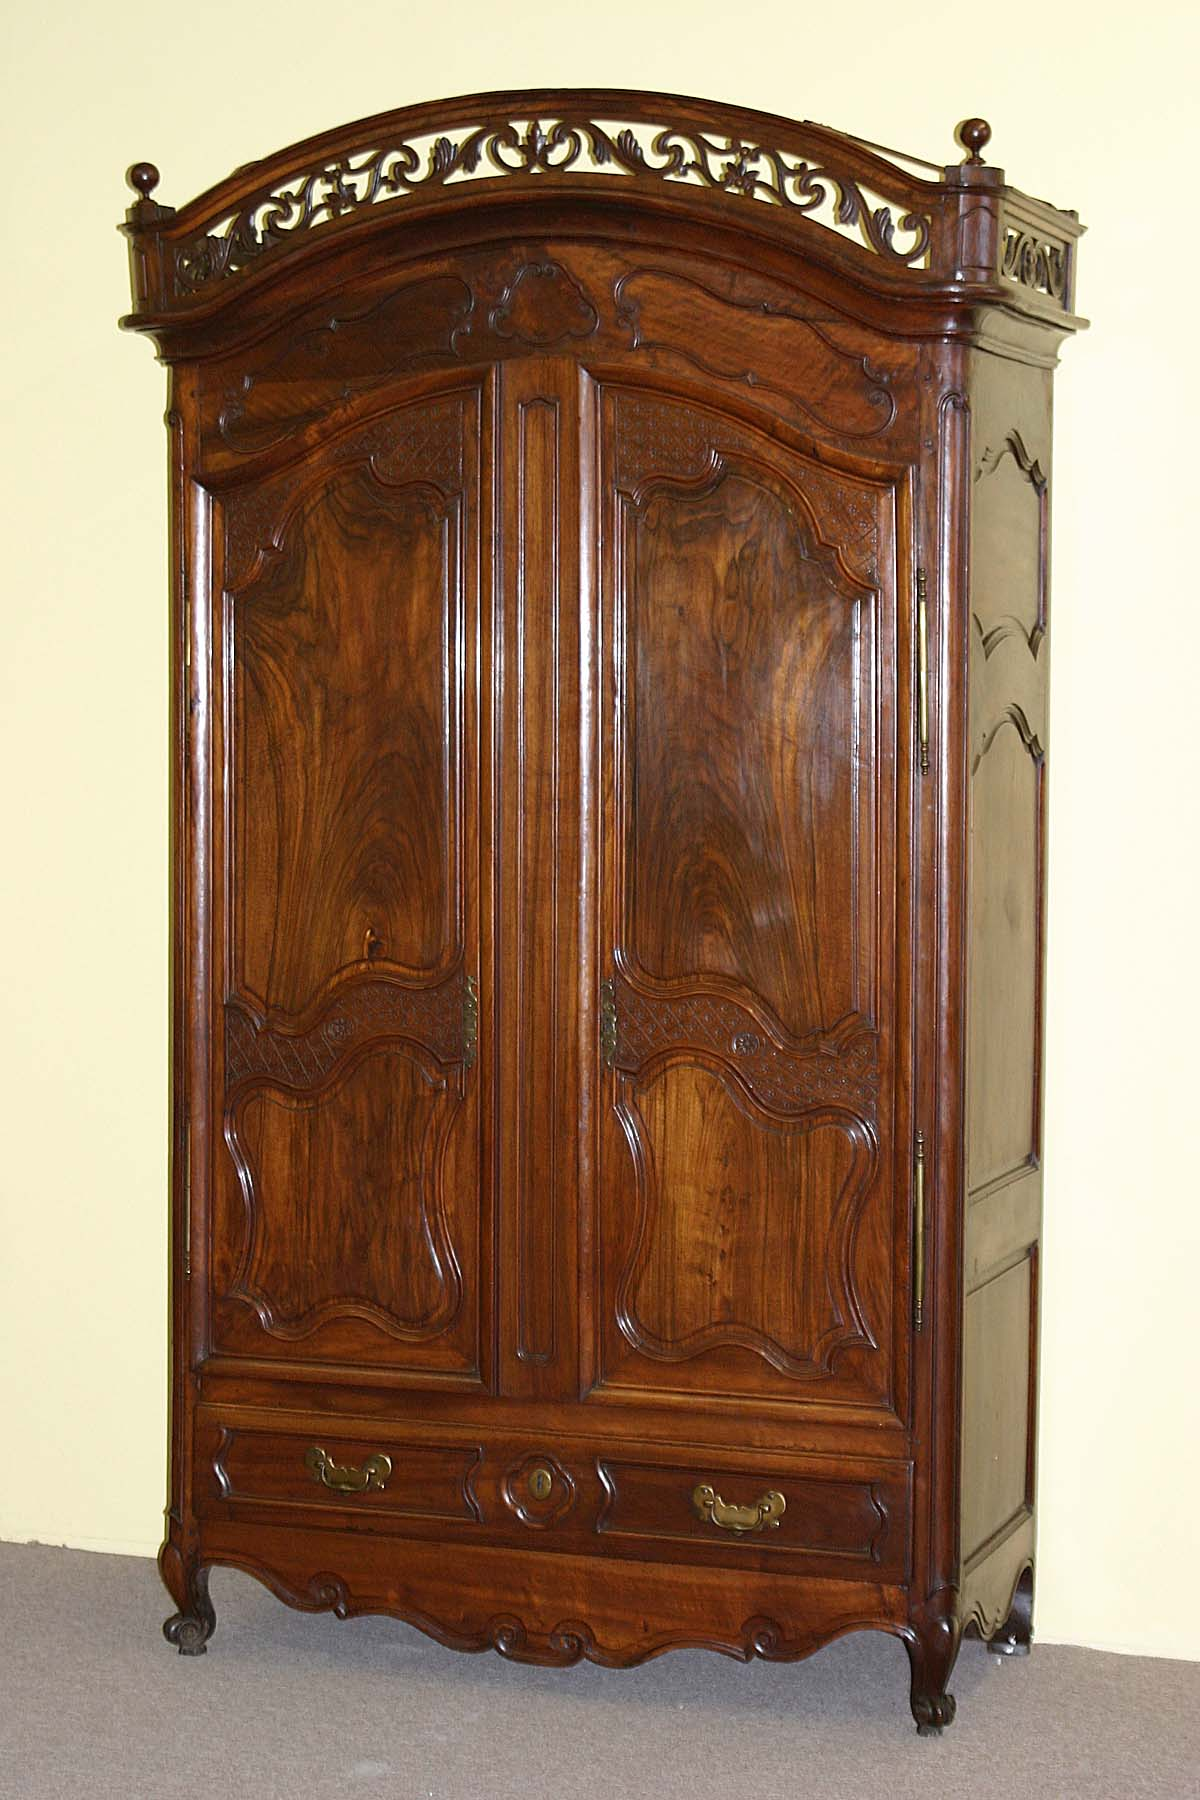 louis xv period marriage armoire. Black Bedroom Furniture Sets. Home Design Ideas